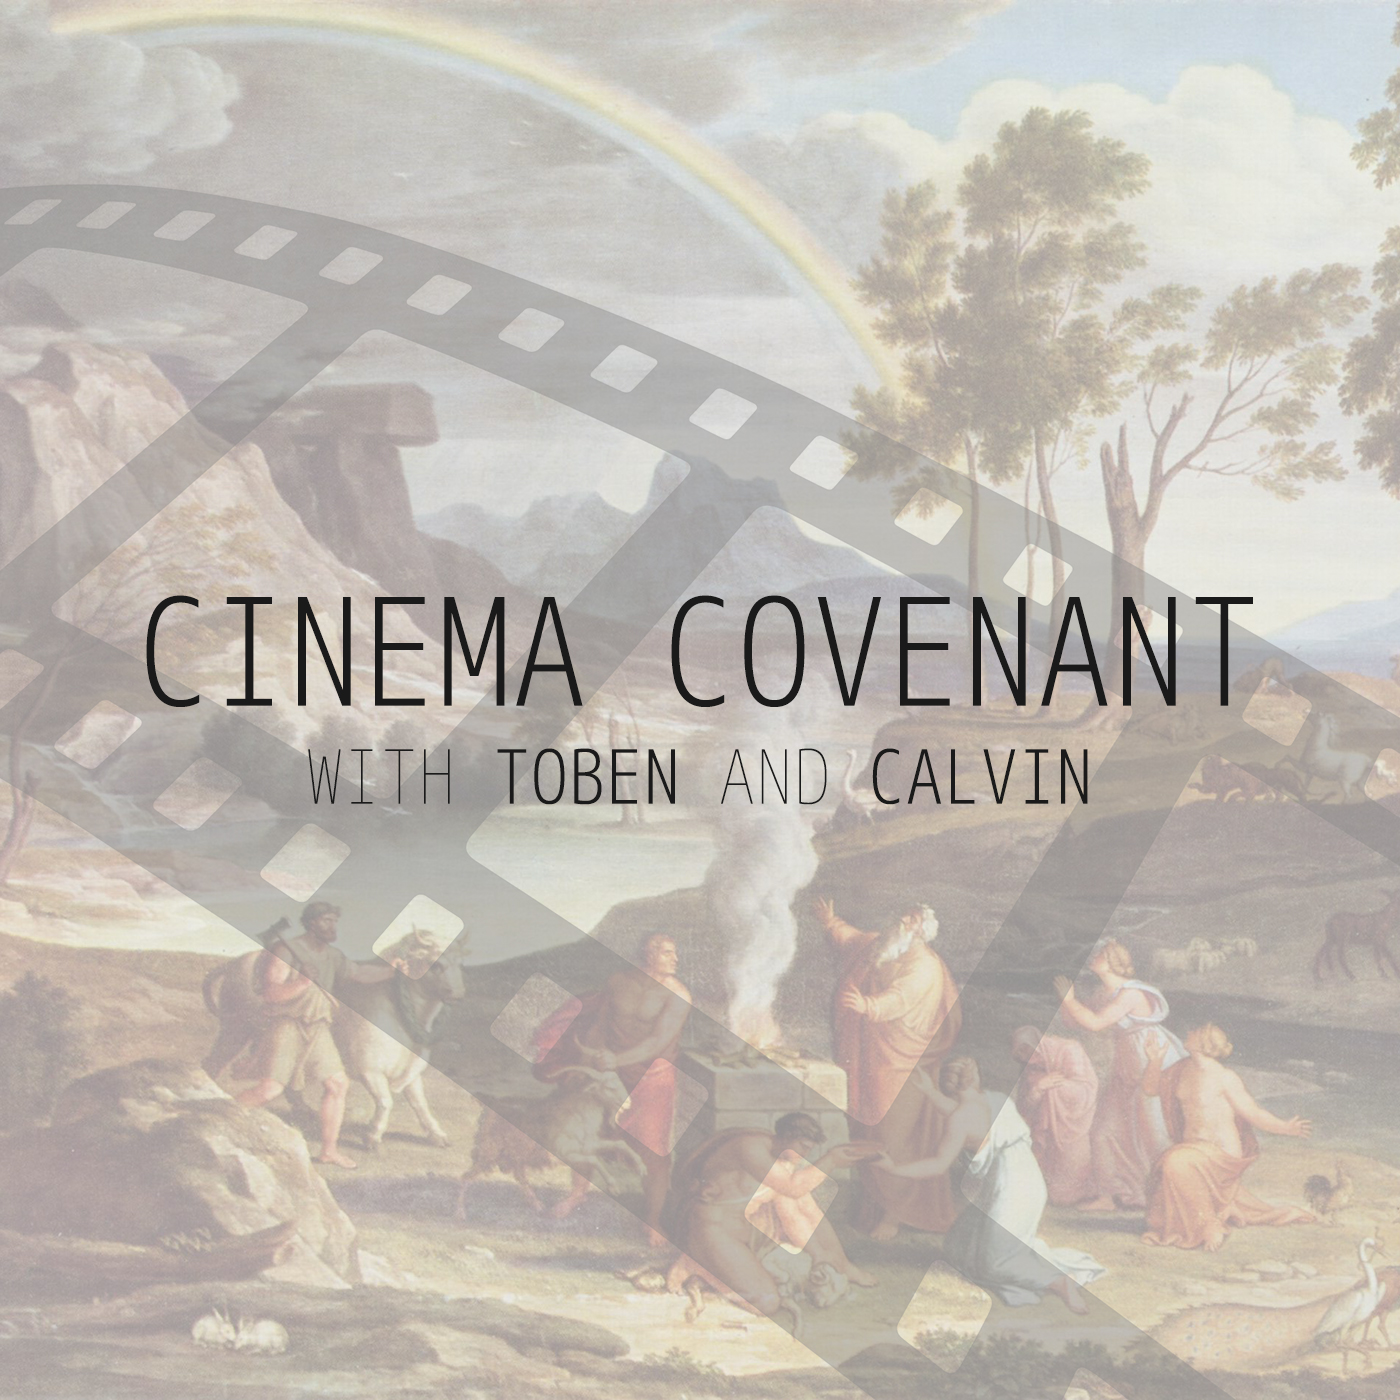 Cinema Covenant